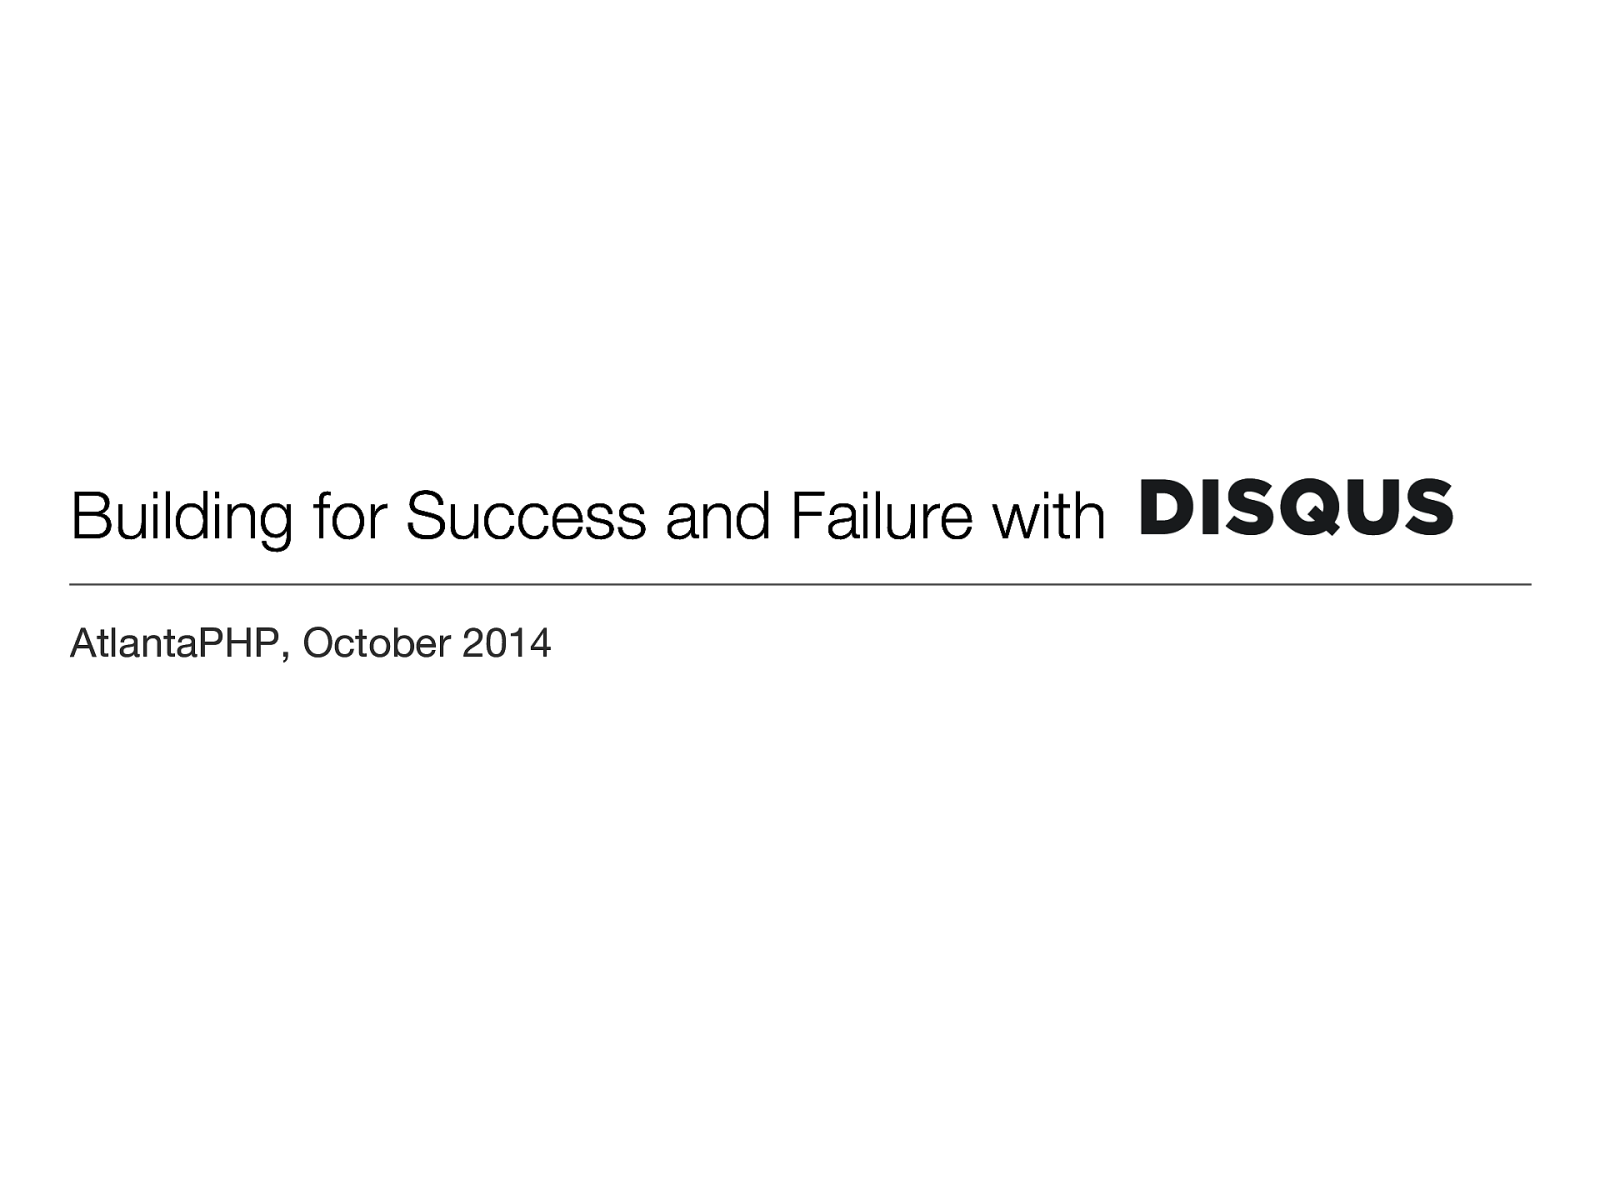 Building for Success and Failure with Disqus